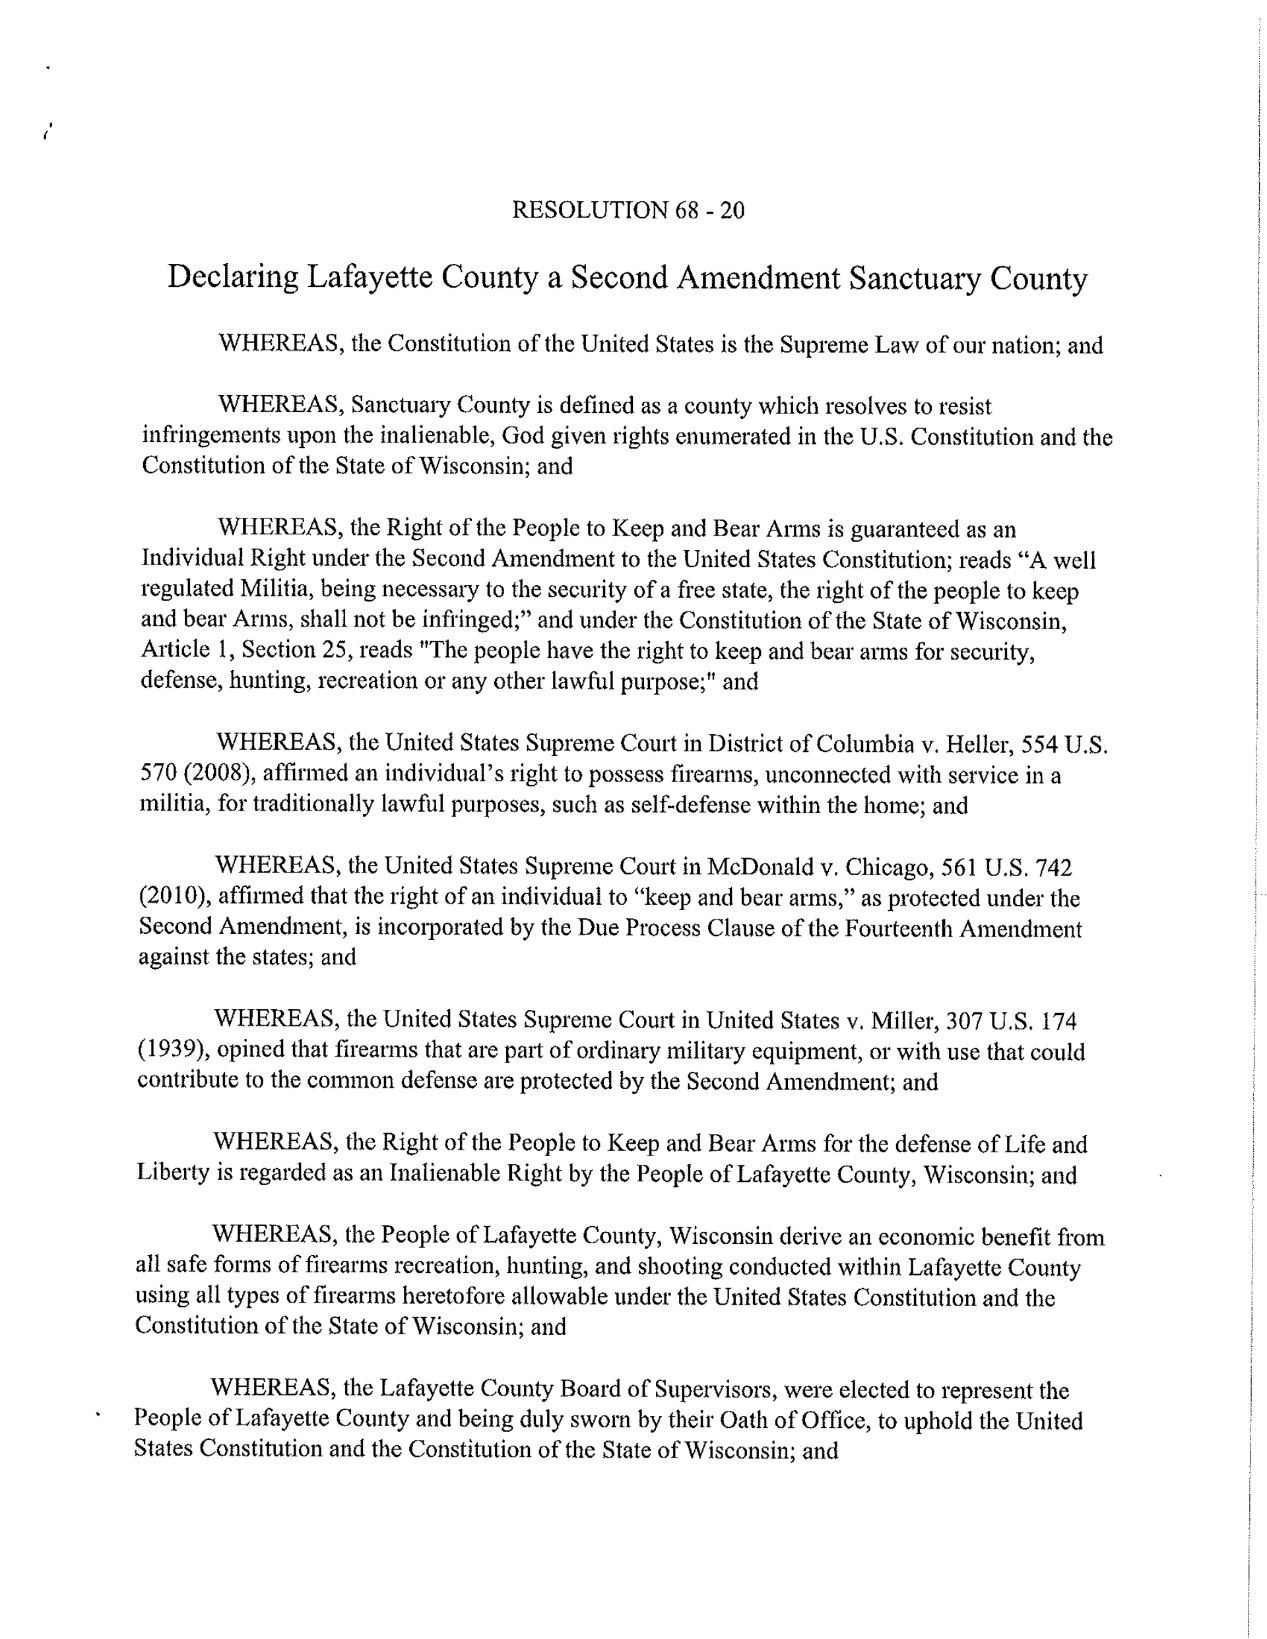 Lafayette County Second Amendment Sanctuary Resolution PG - 1